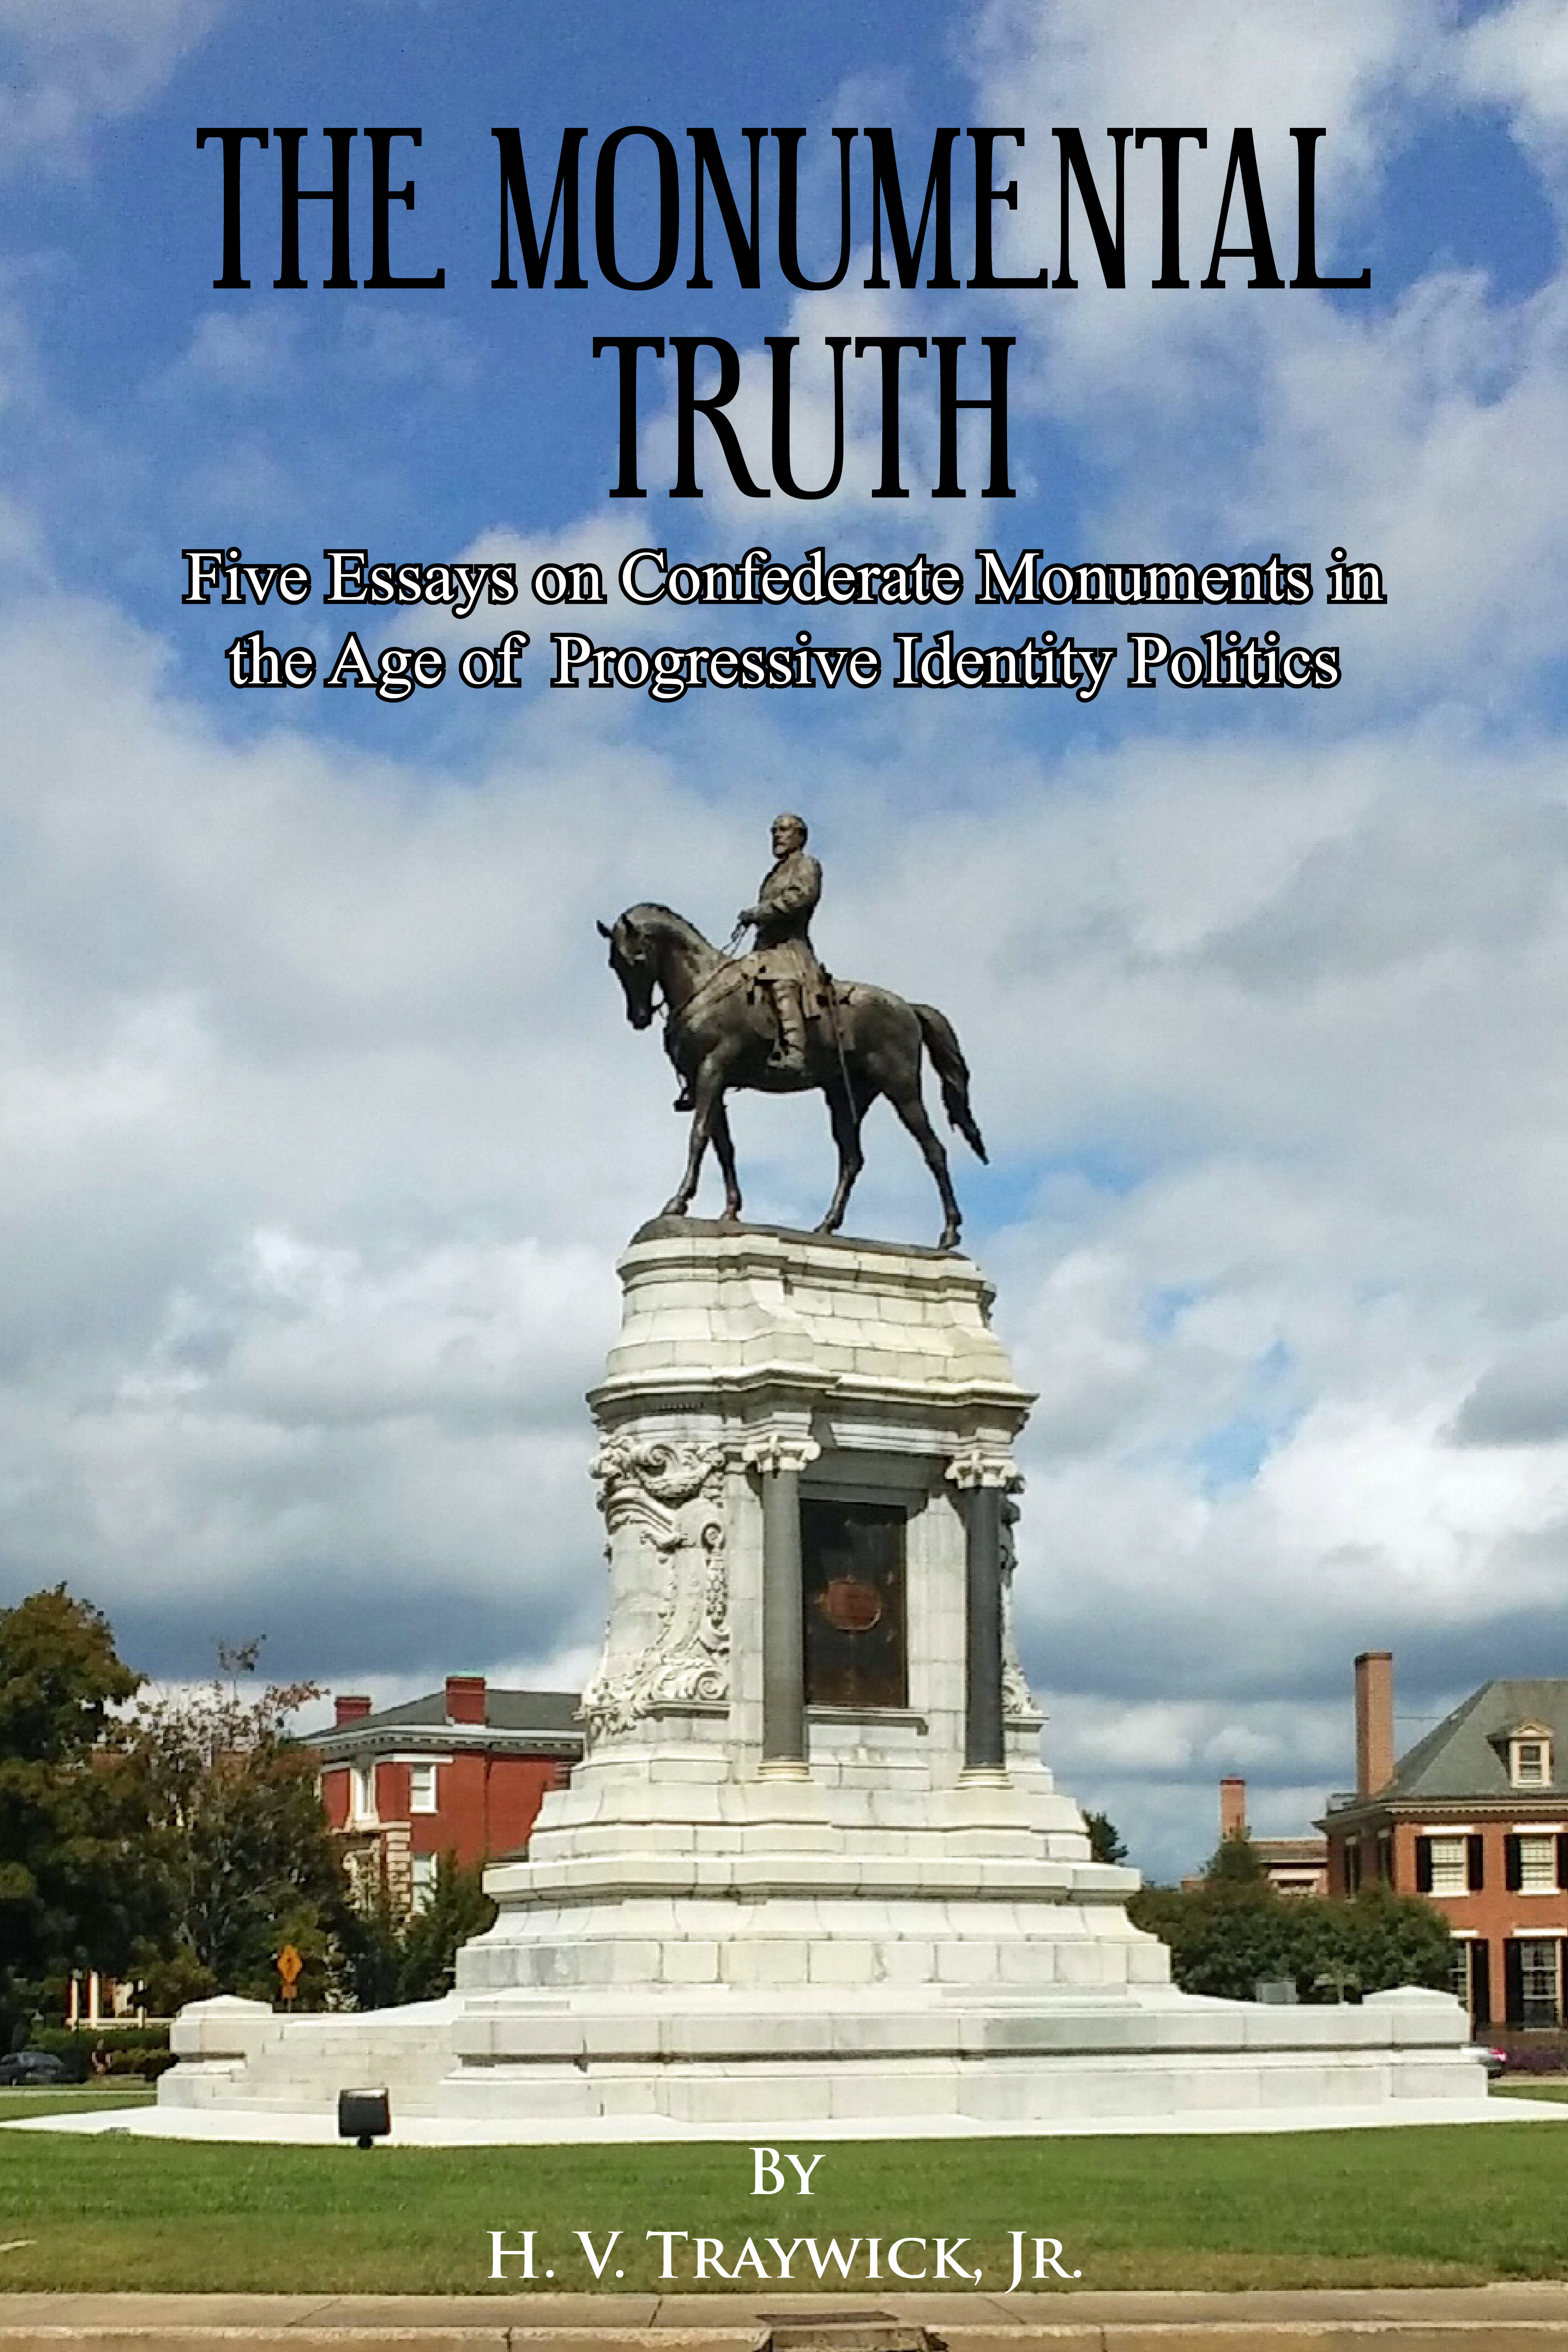 The Monumental Truth: Five Essays for the Preservation of Confederate Monuments in the Age of Identity Politics, PPB